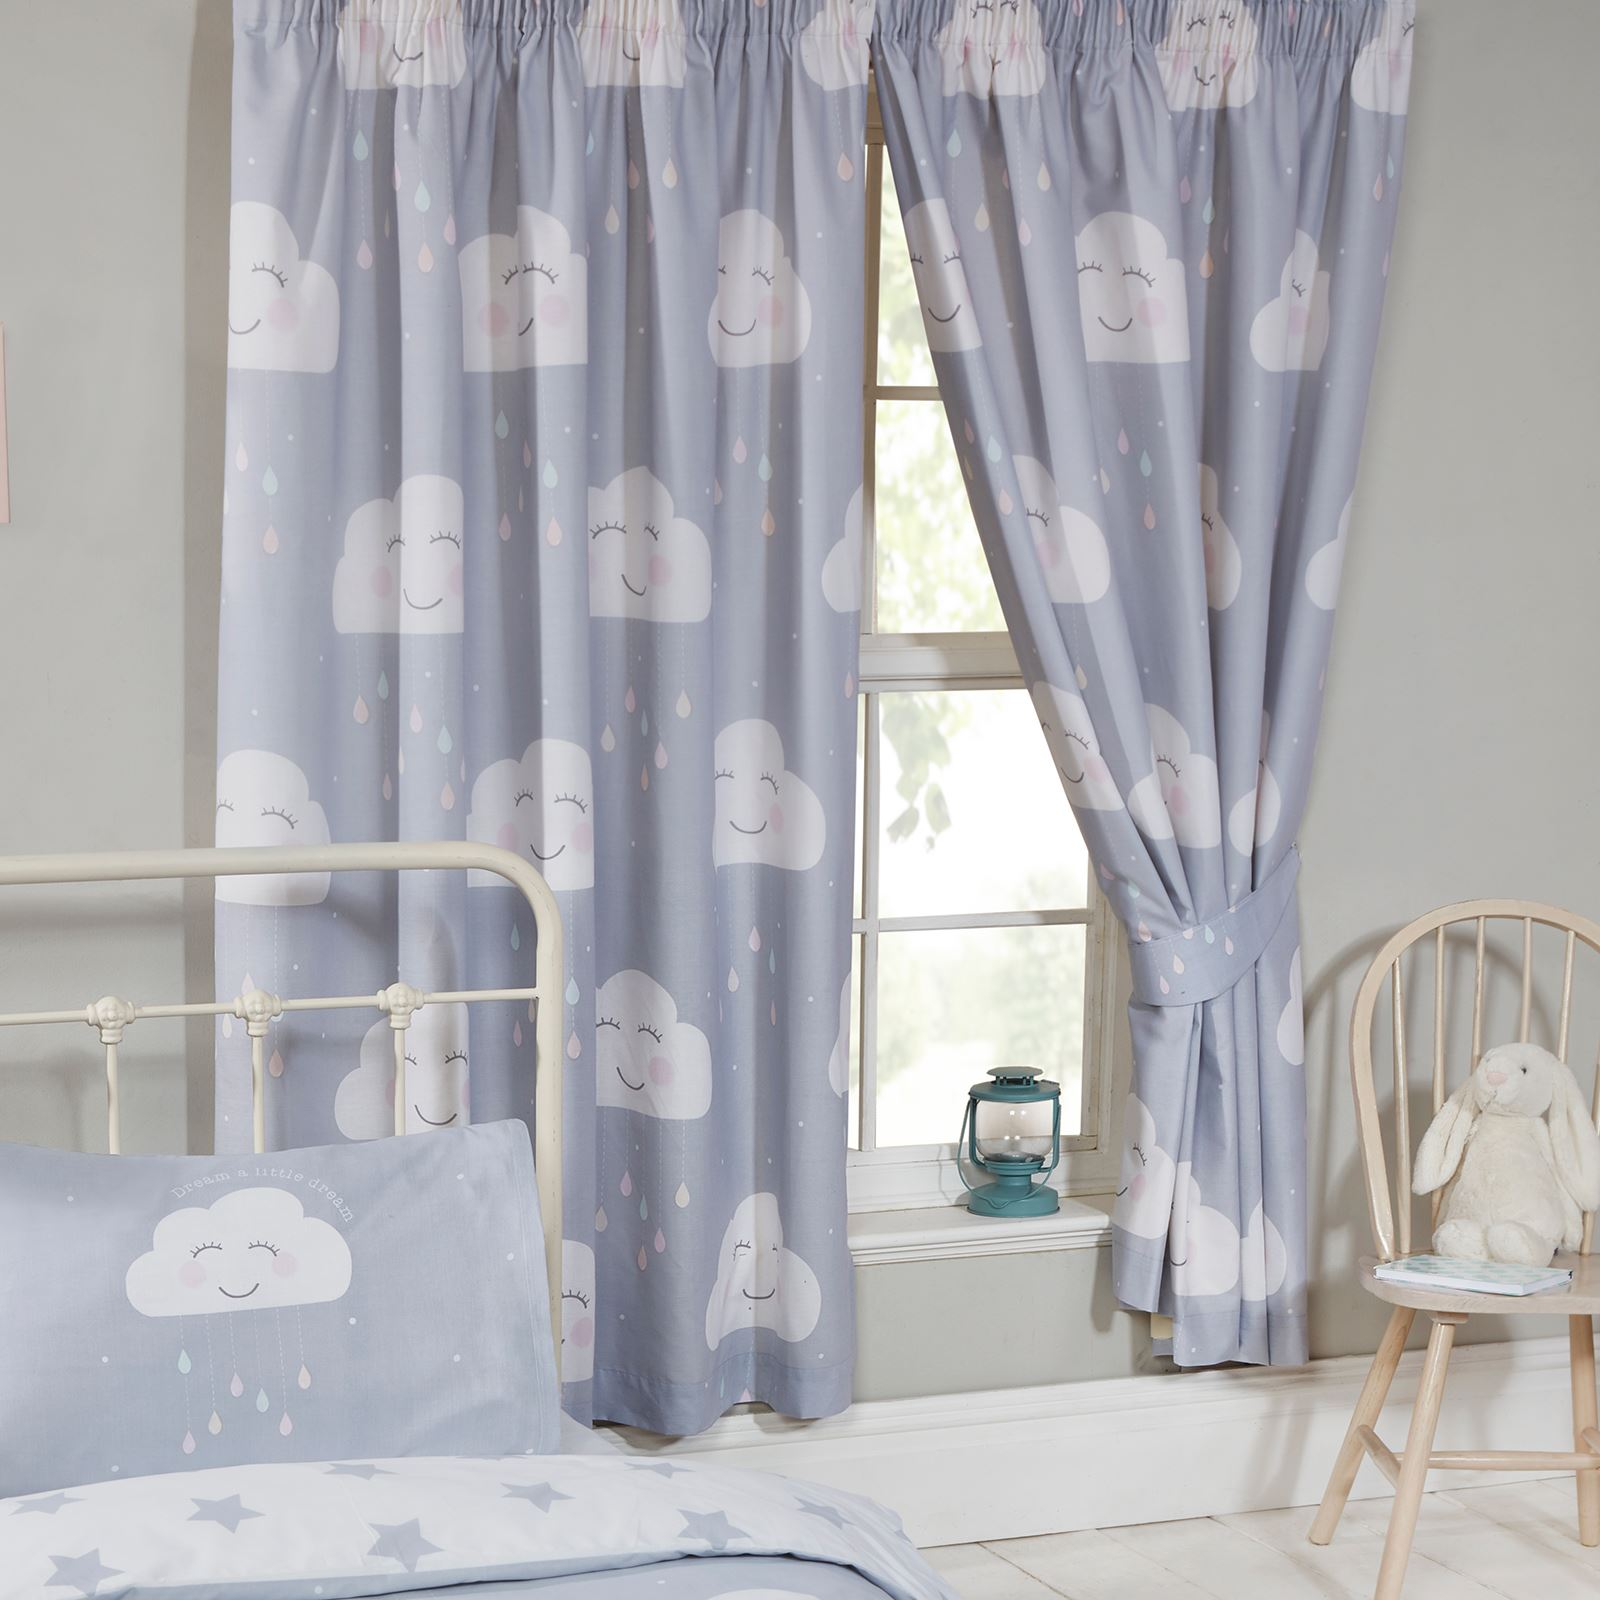 Details about BOYS KIDS BEDROOM CURTAINS 54\